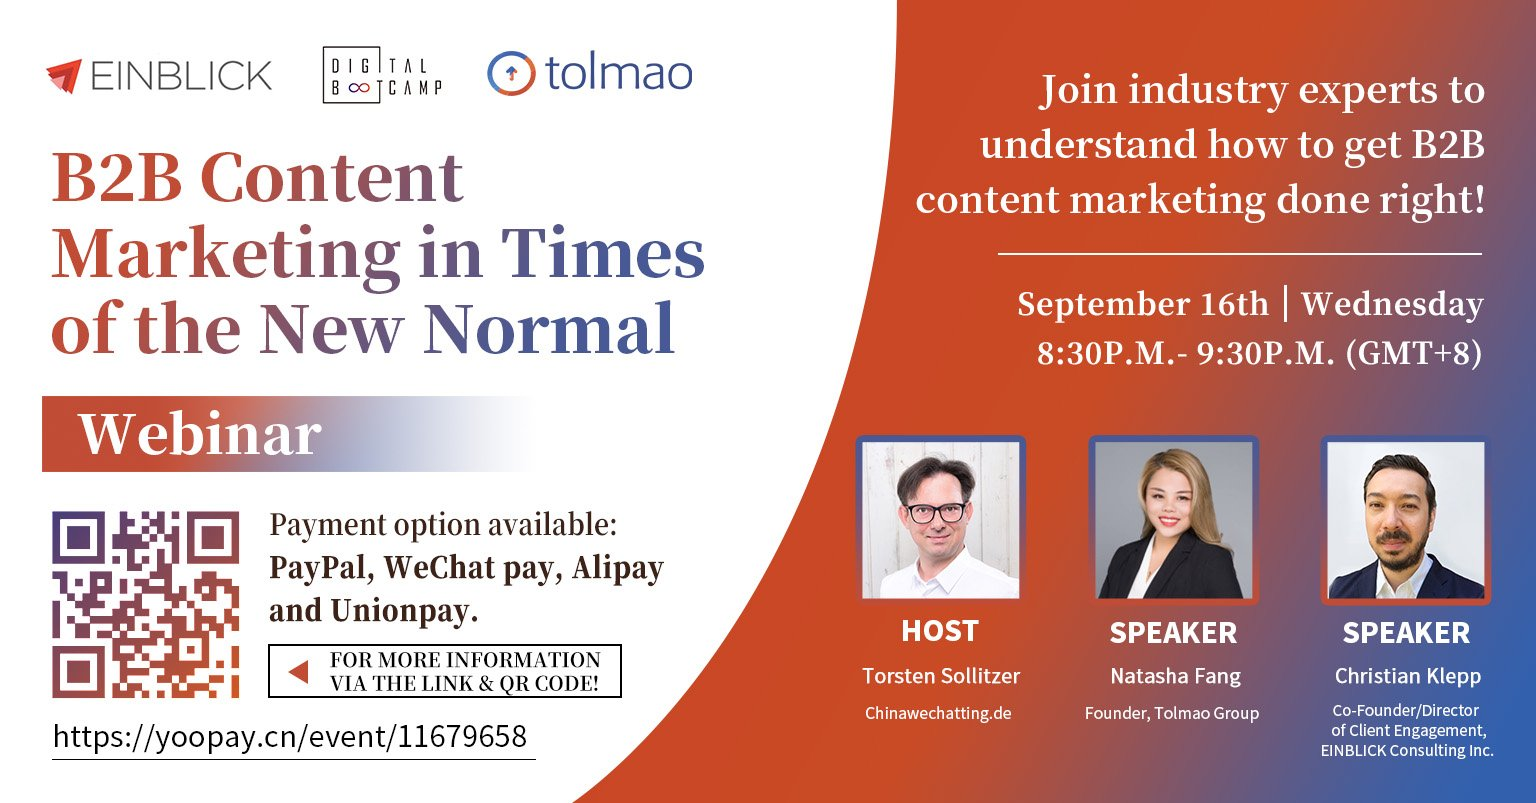 September 16th Webinar: B2B Content Marketing in Times of New Normal